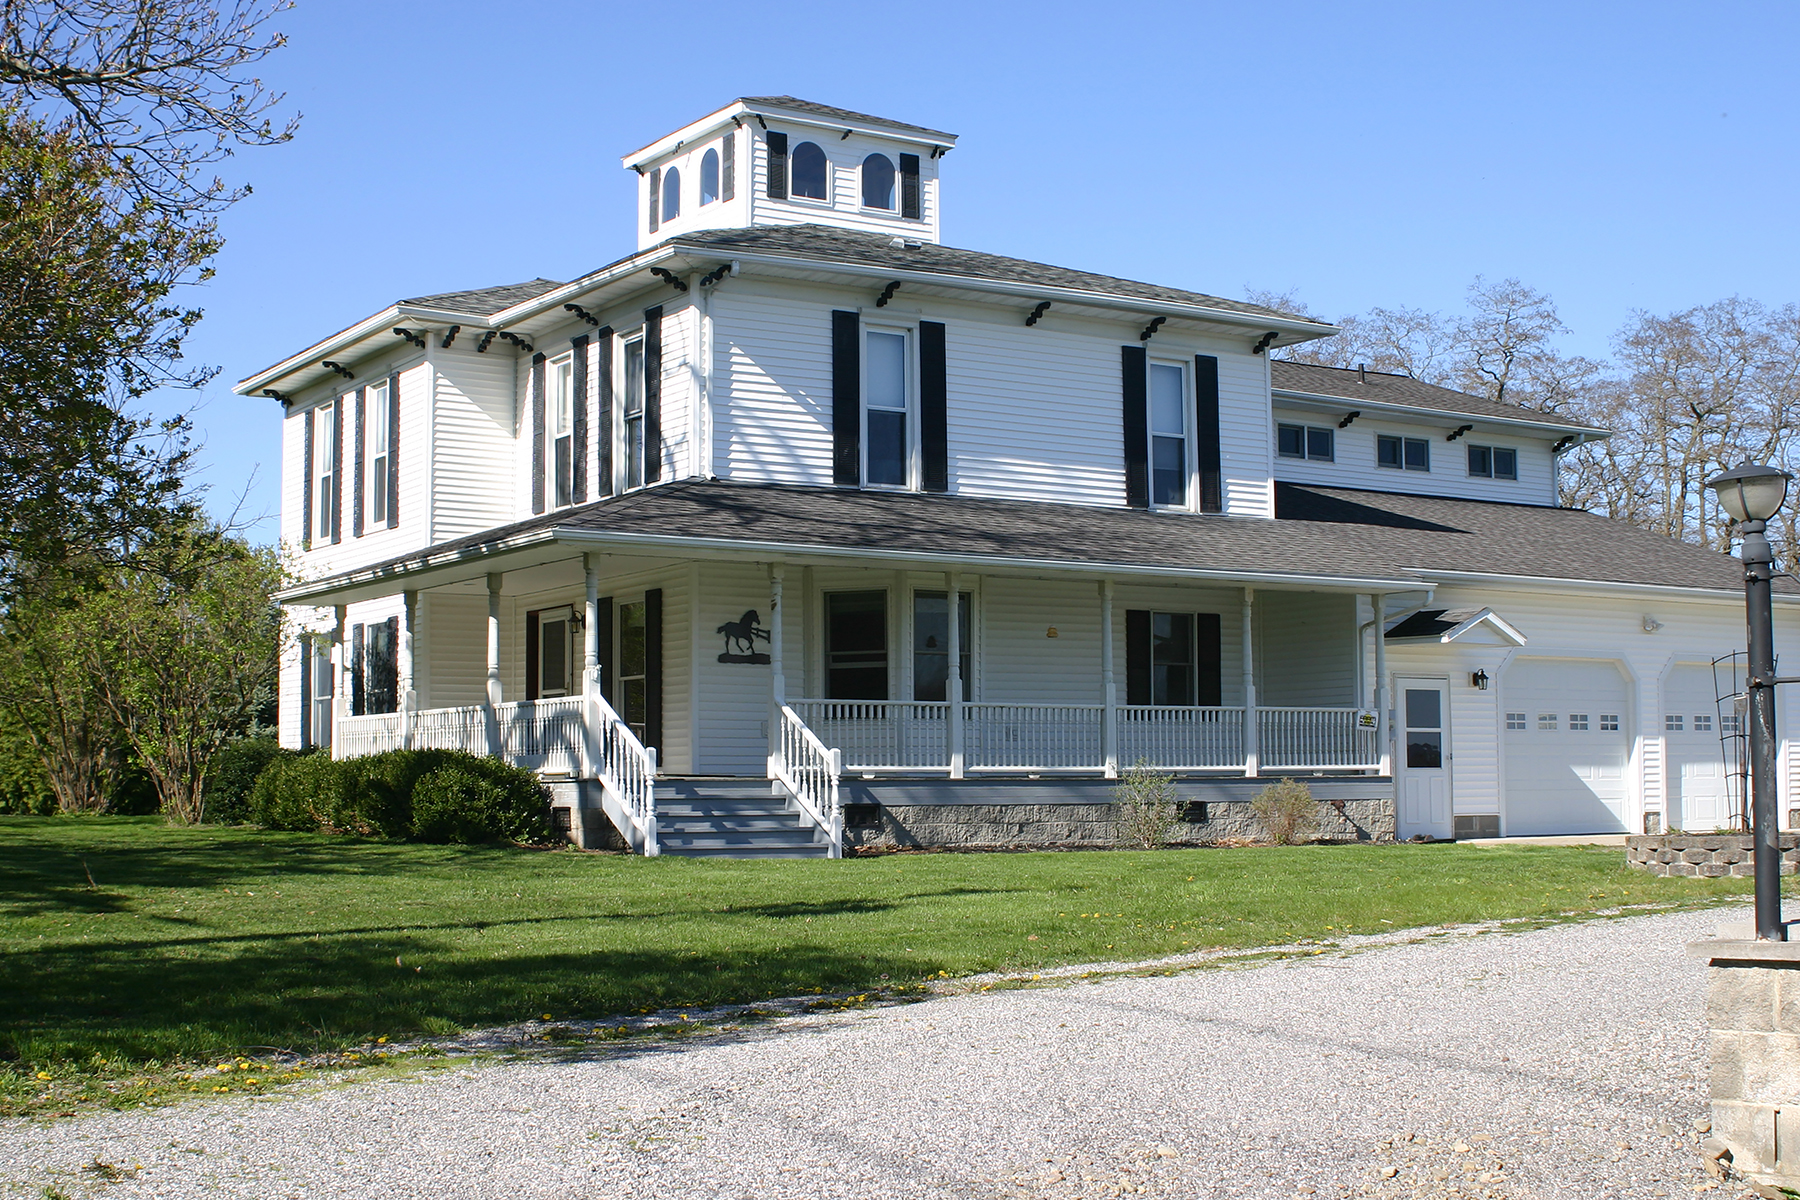 Single Family Home for Sale at Dream Valley View Ranch and Resort 8983 & 899 Oakland Rd Nunda, New York 14517 United States